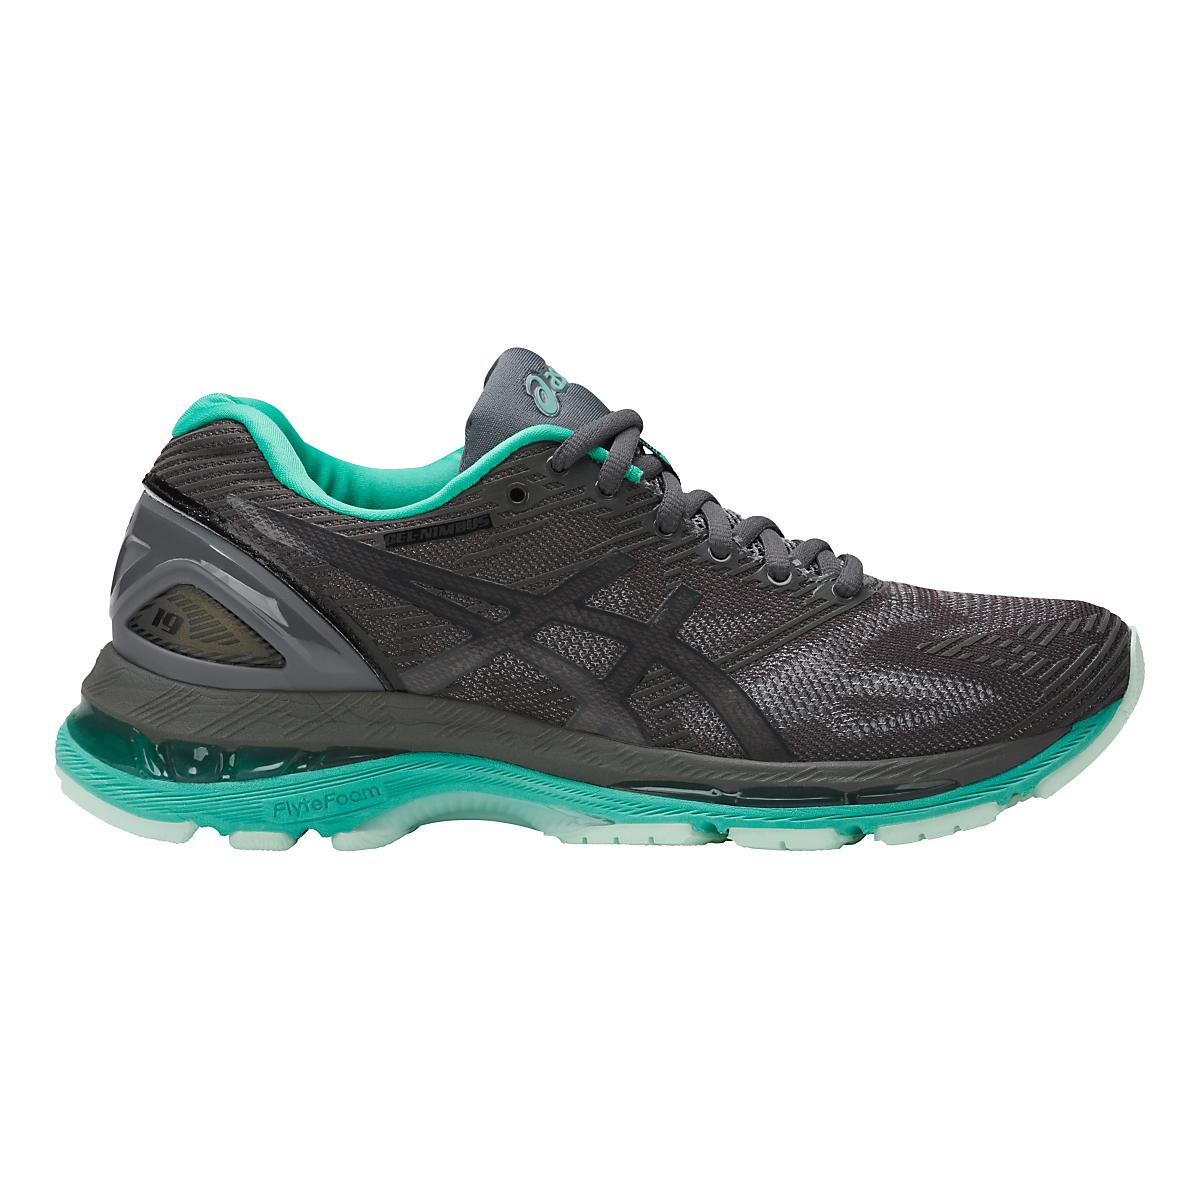 on sale 5f6e7 25497 Women's GEL-Nimbus 19 Lite-Show